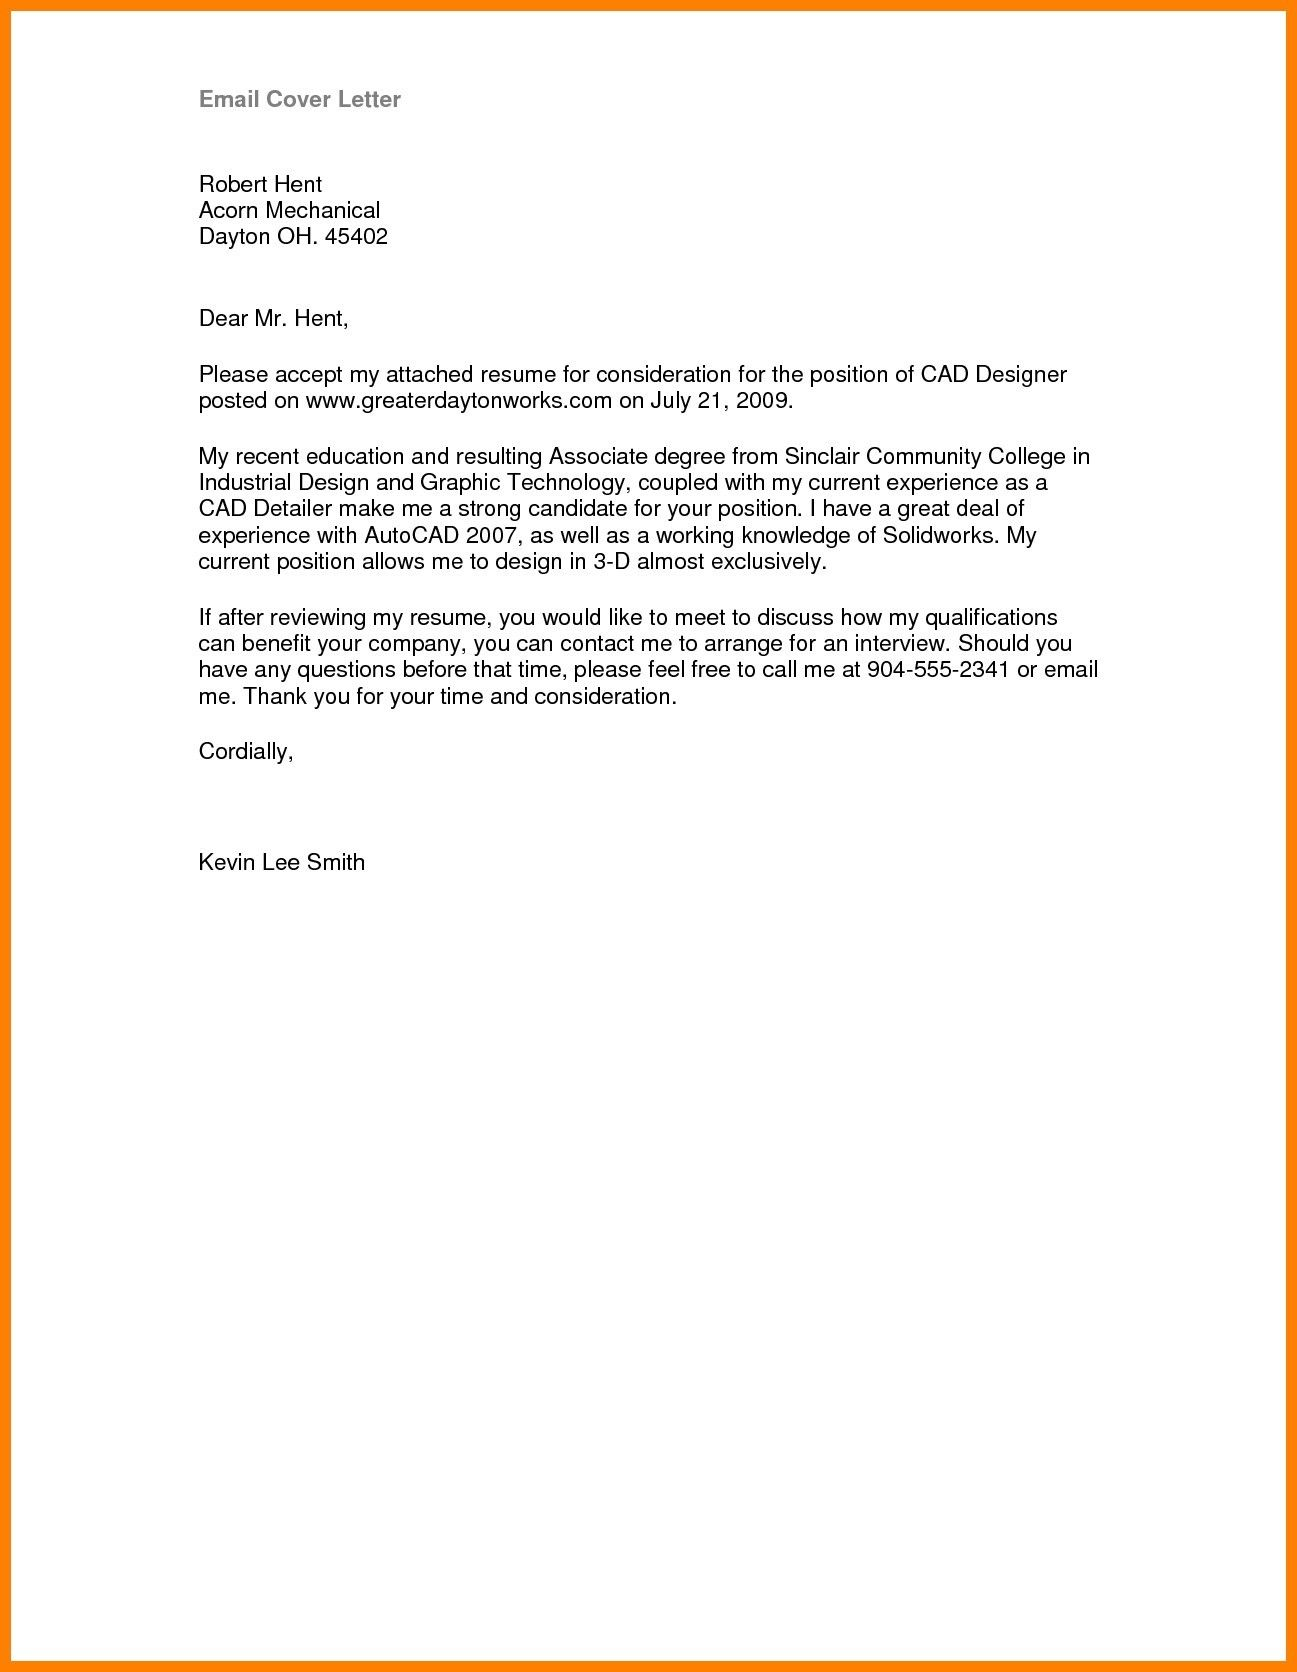 25 Email Cover Letter Sample Email Cover Letter Sample